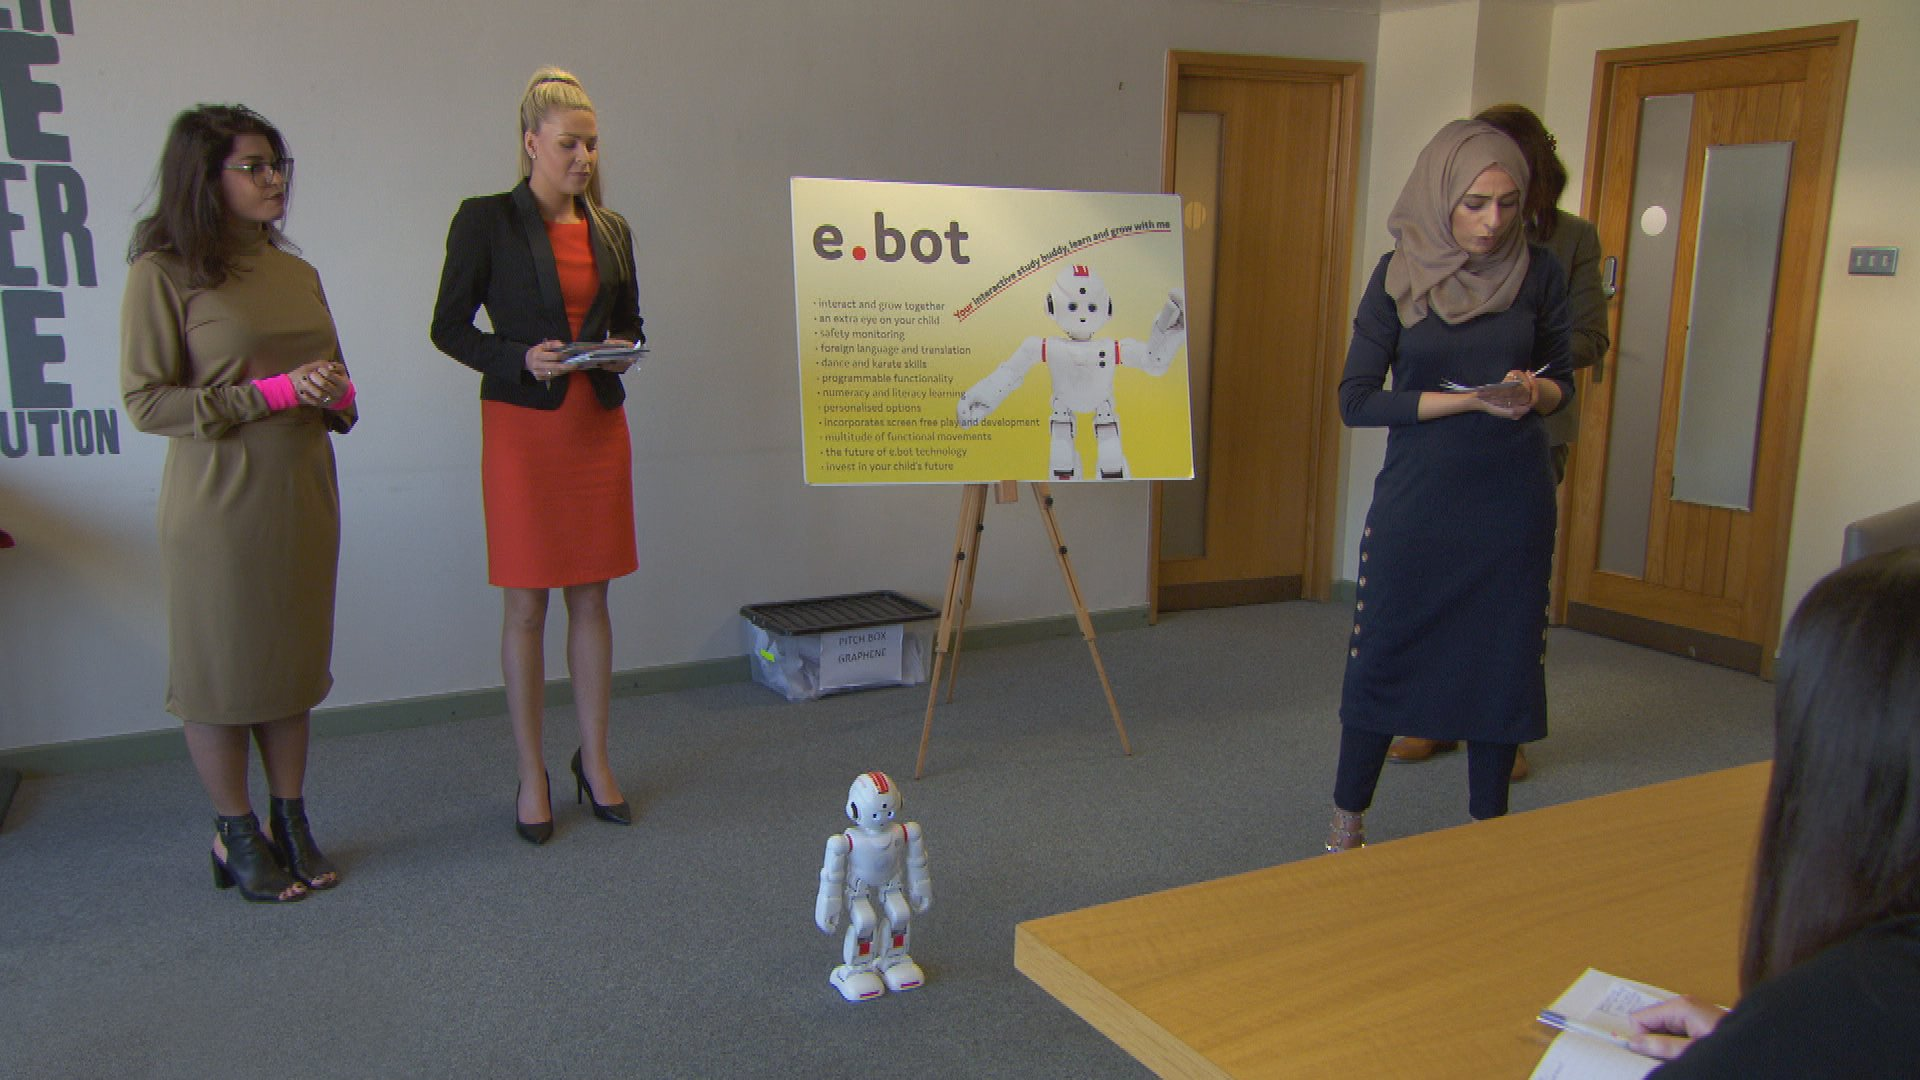 The girls are about to demonstrate the dancing skills of the robot on The Apprentice tonight at 9pm BBC1. https://t.co/LlI02xuewr